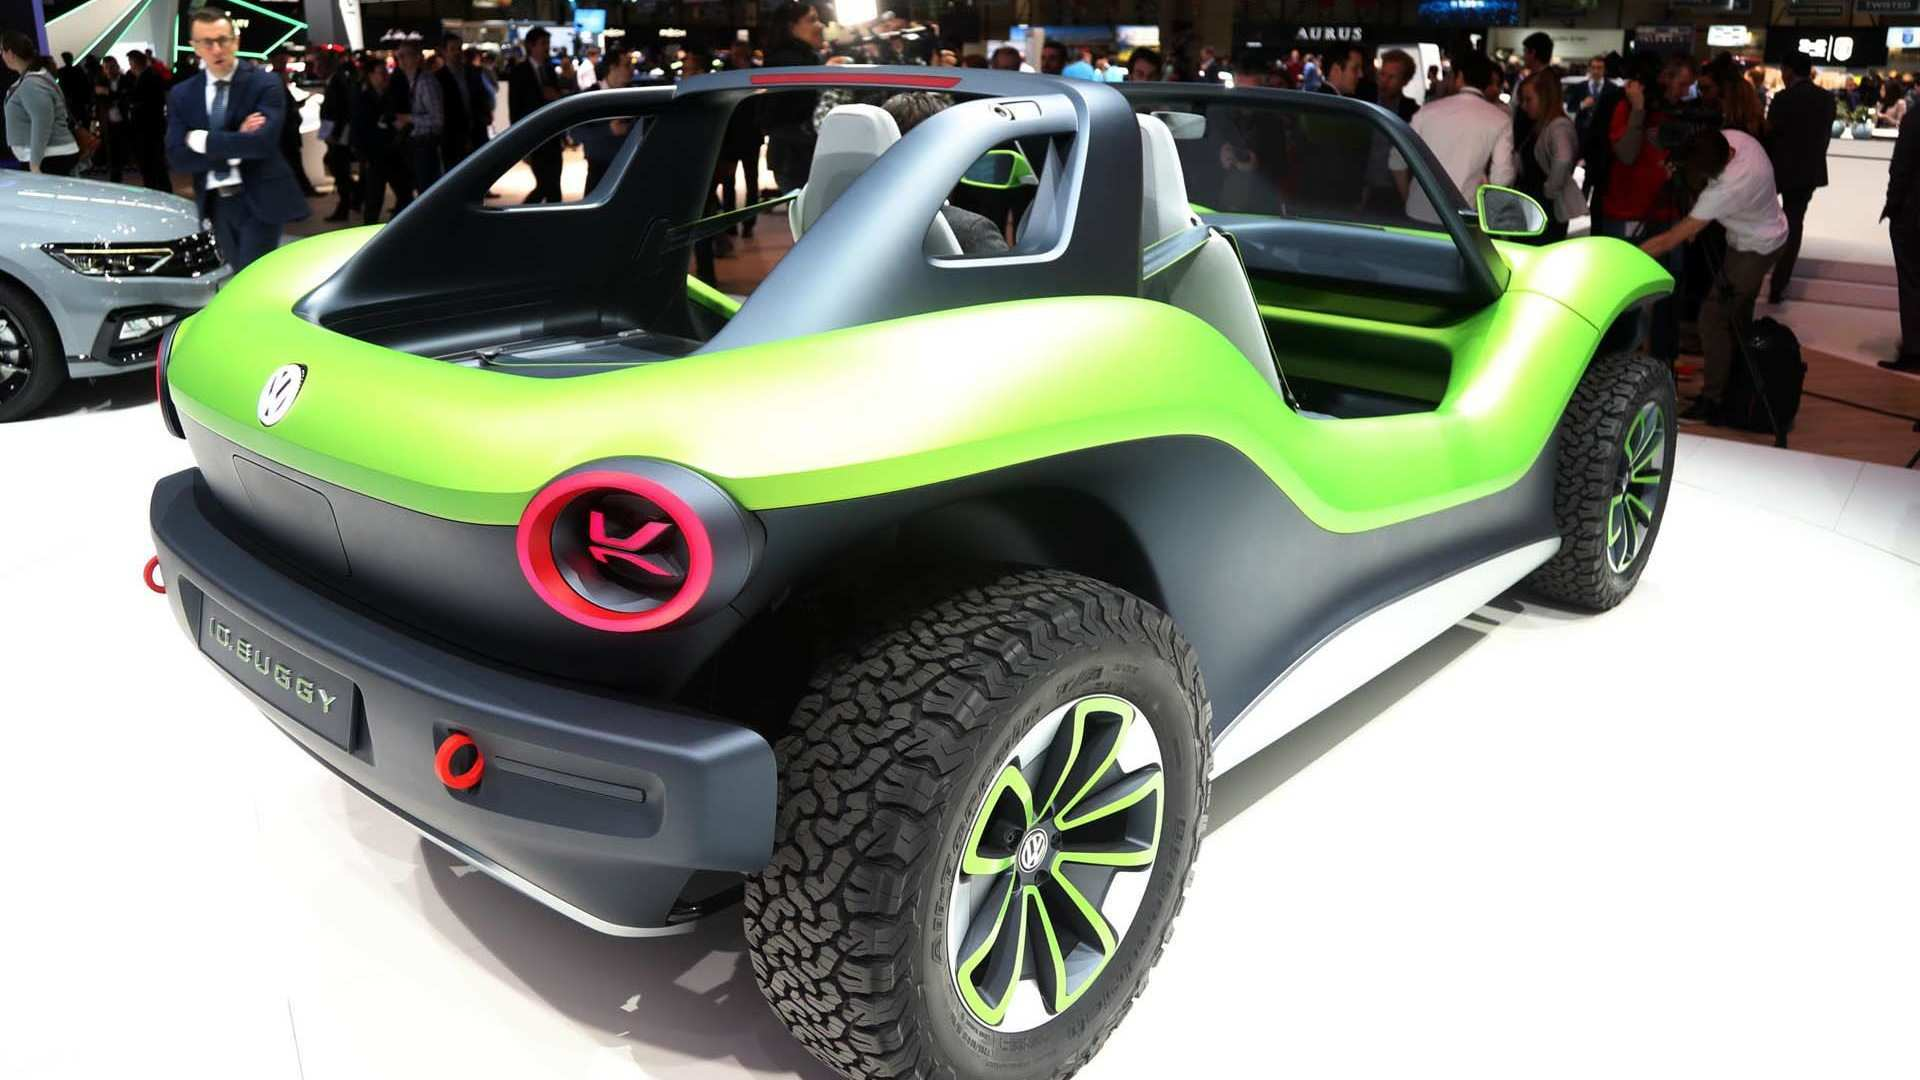 38 Concept of 2020 Volkswagen Dune Buggy Price by 2020 Volkswagen Dune Buggy